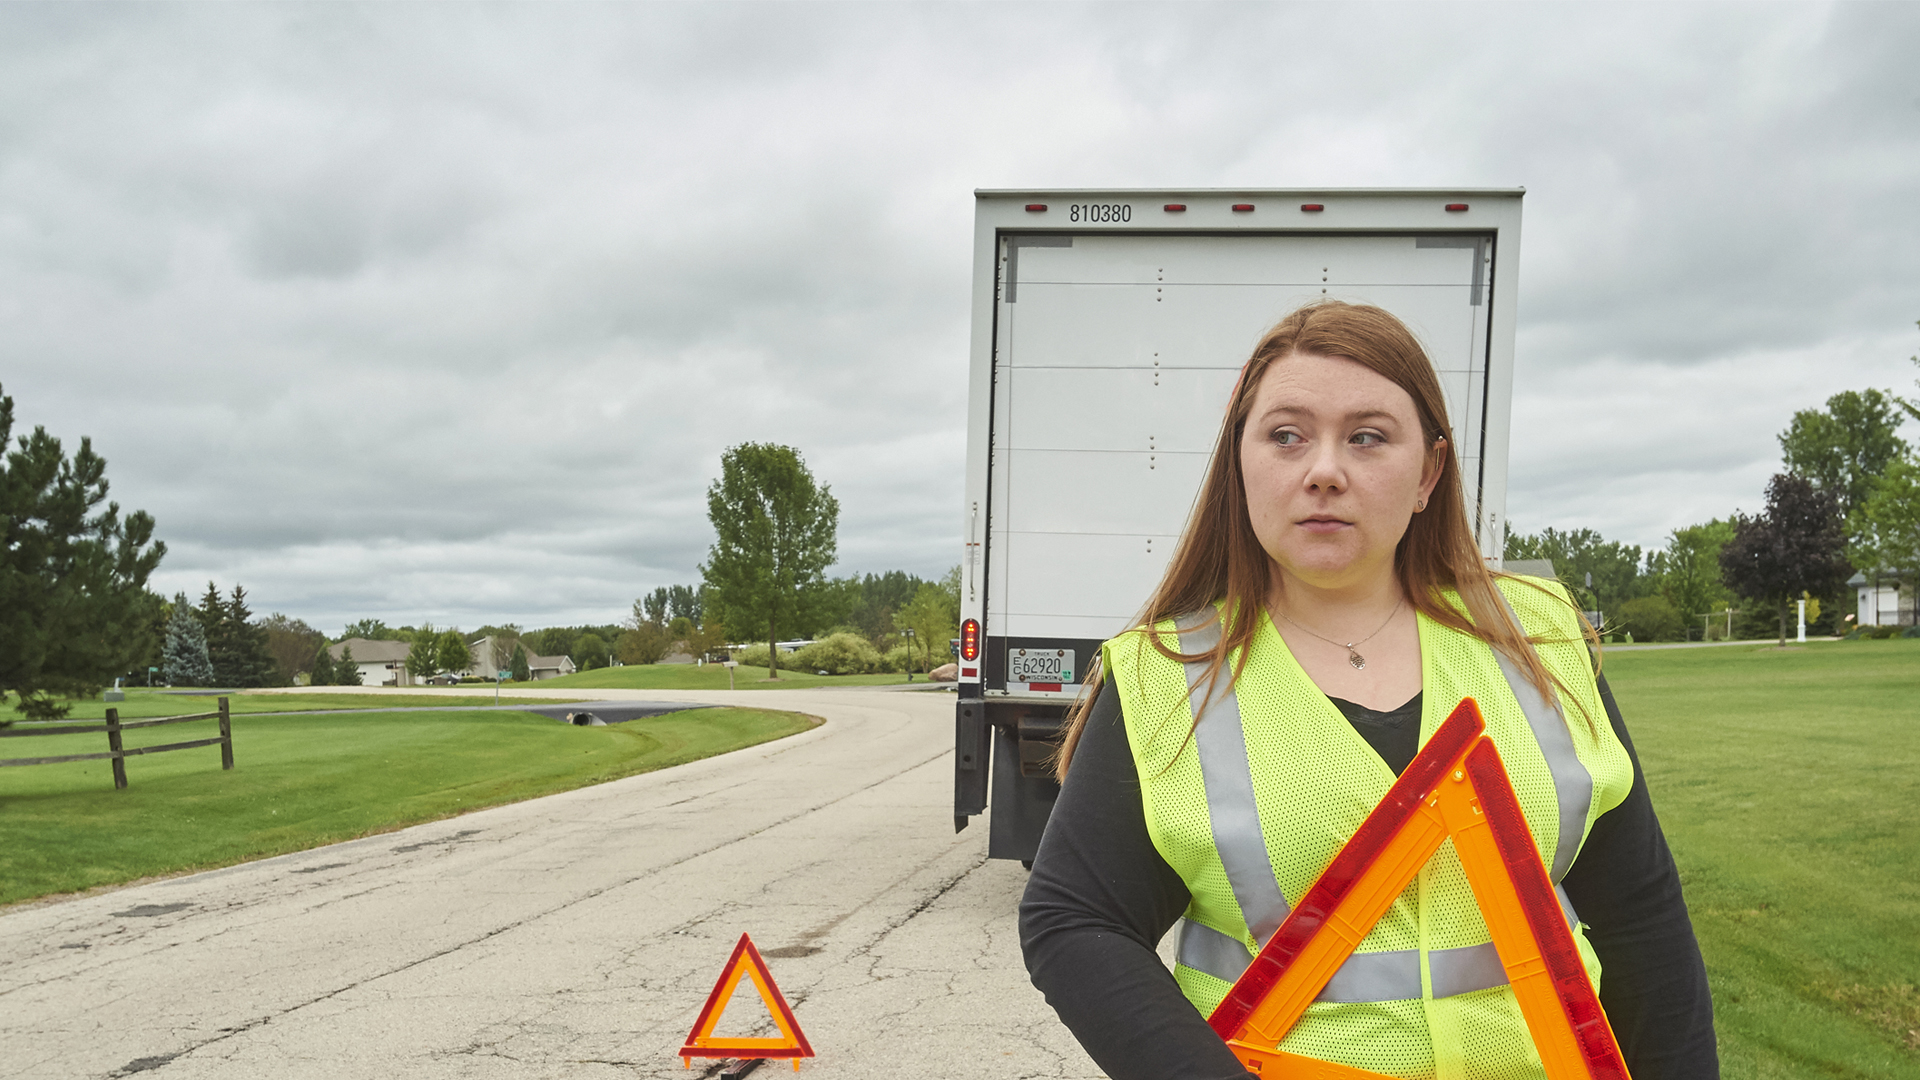 Safe and Smart Non-CDL Driver Training for Inexperienced Drivers: Post-Crash Procedures